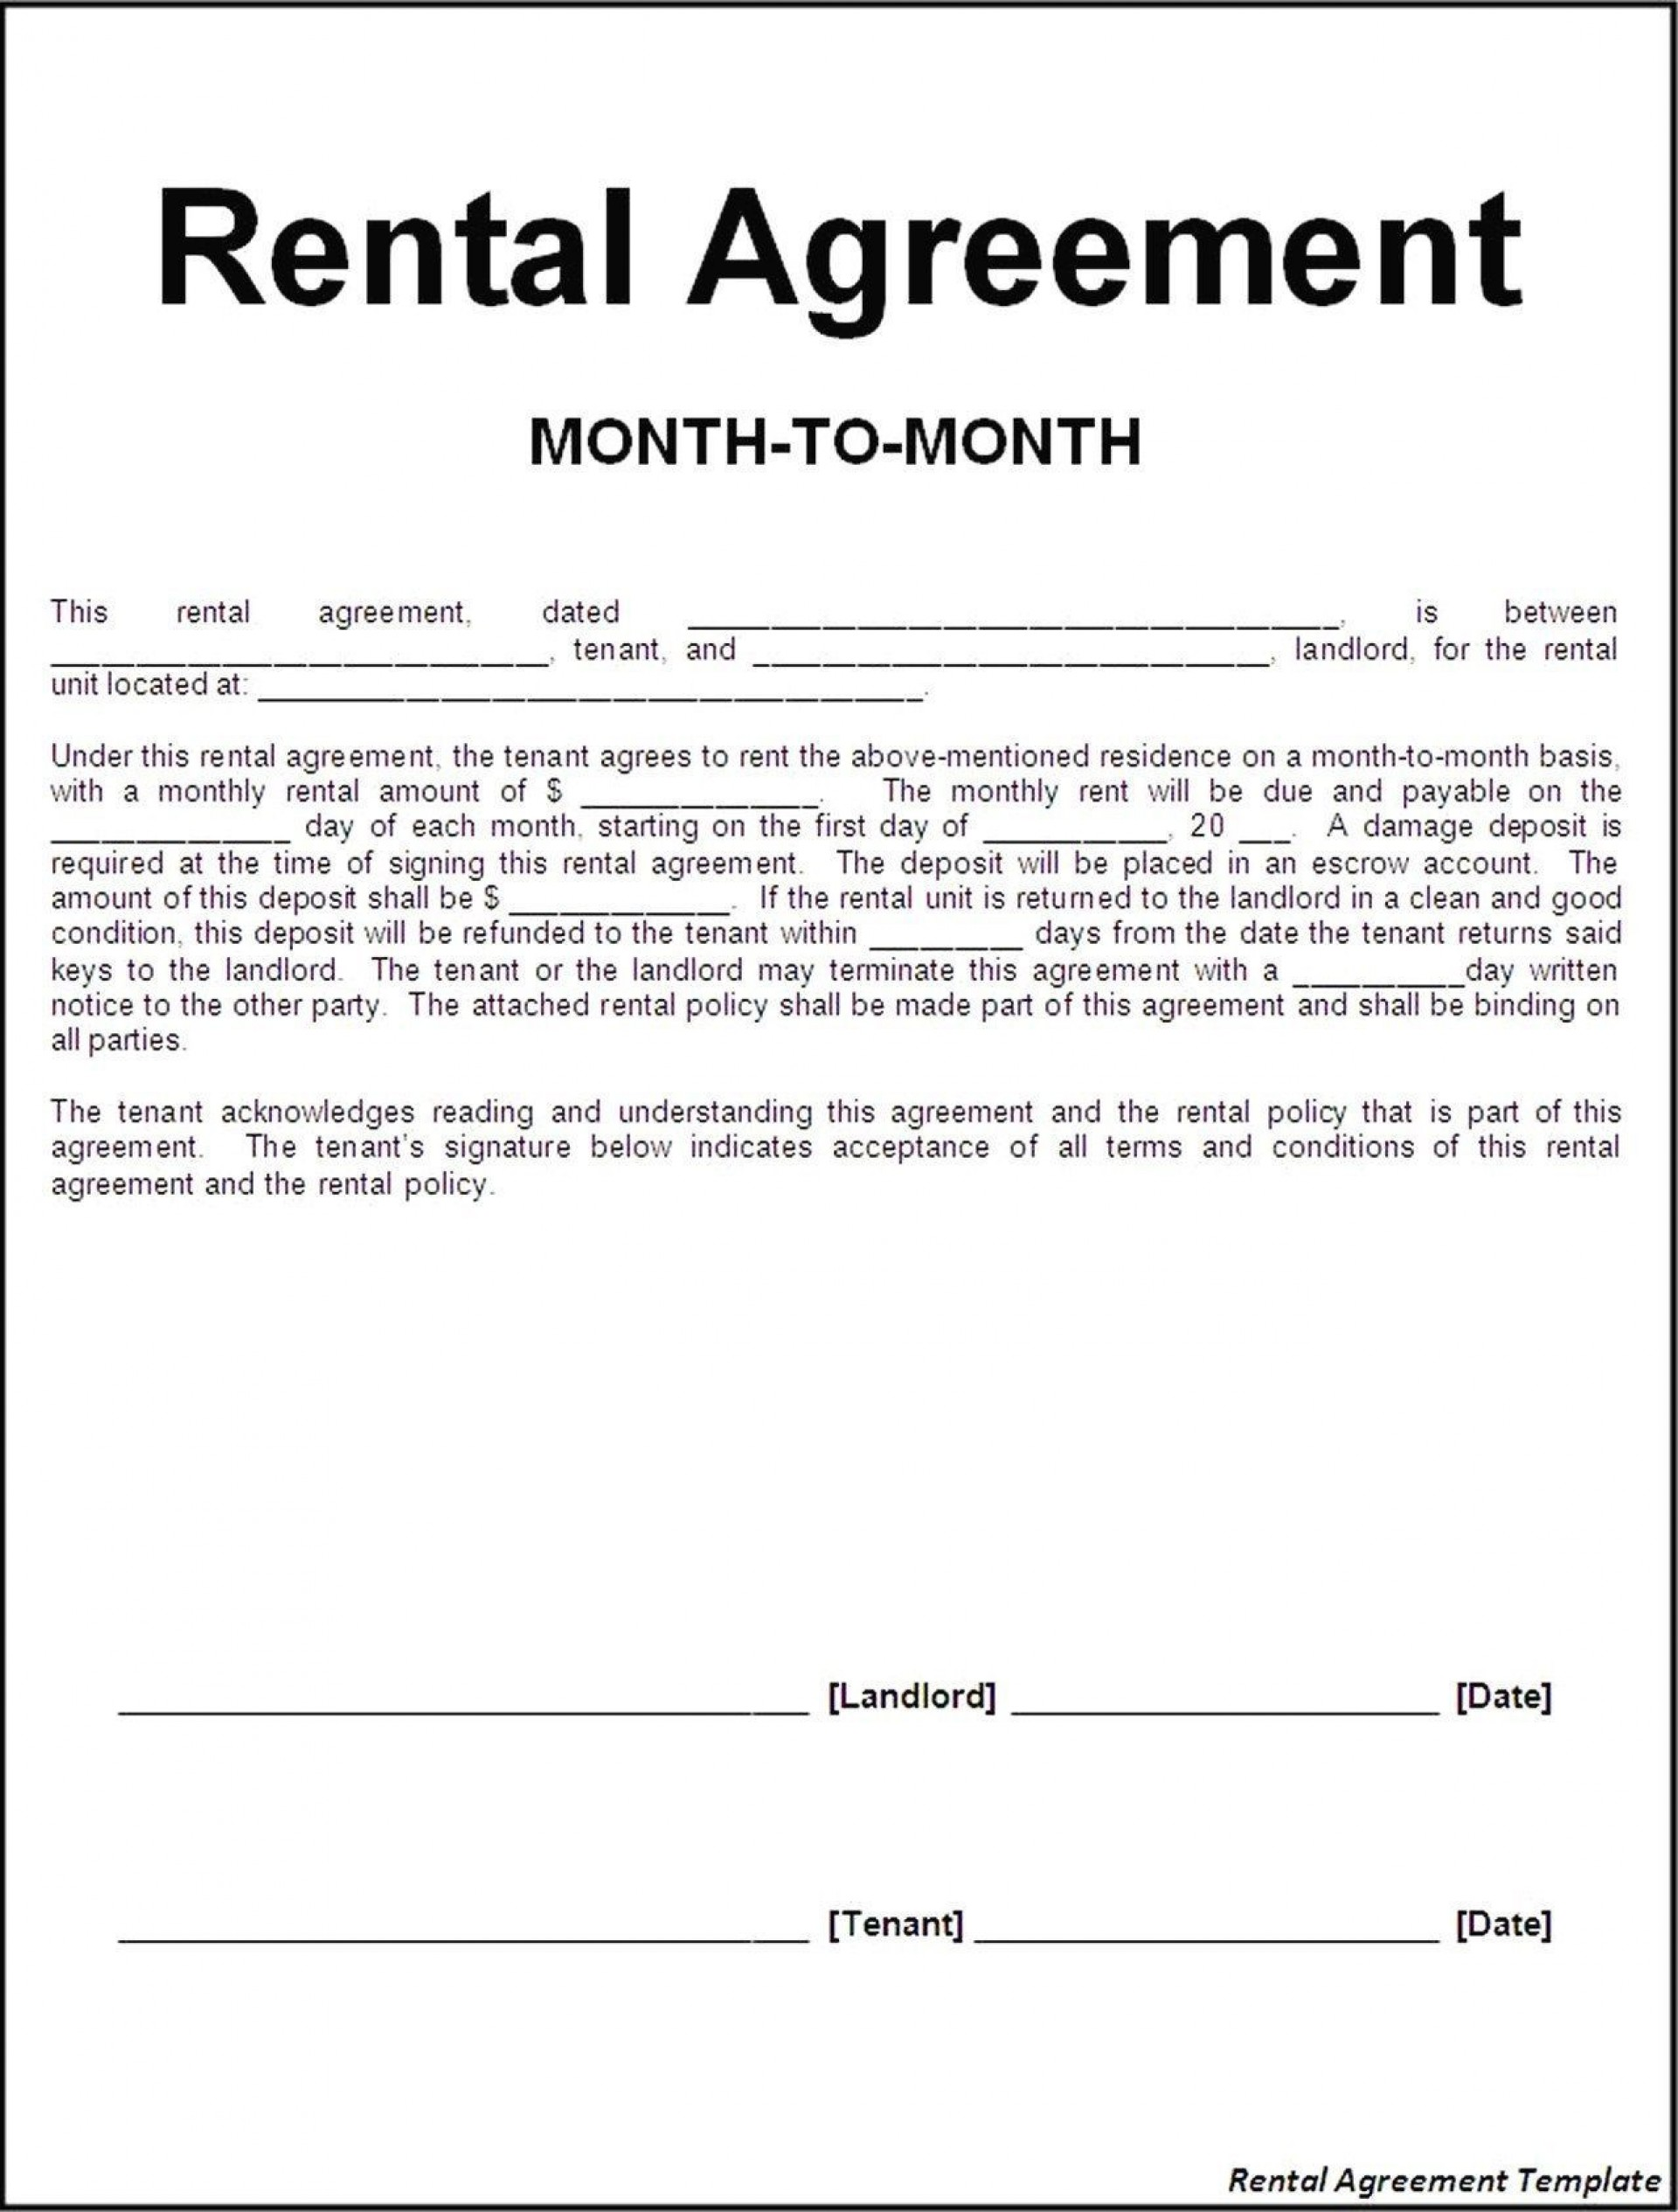 007 Shocking Apartment Rental Agreement Form High Def  Forms Lease Ontario Format Simple1920